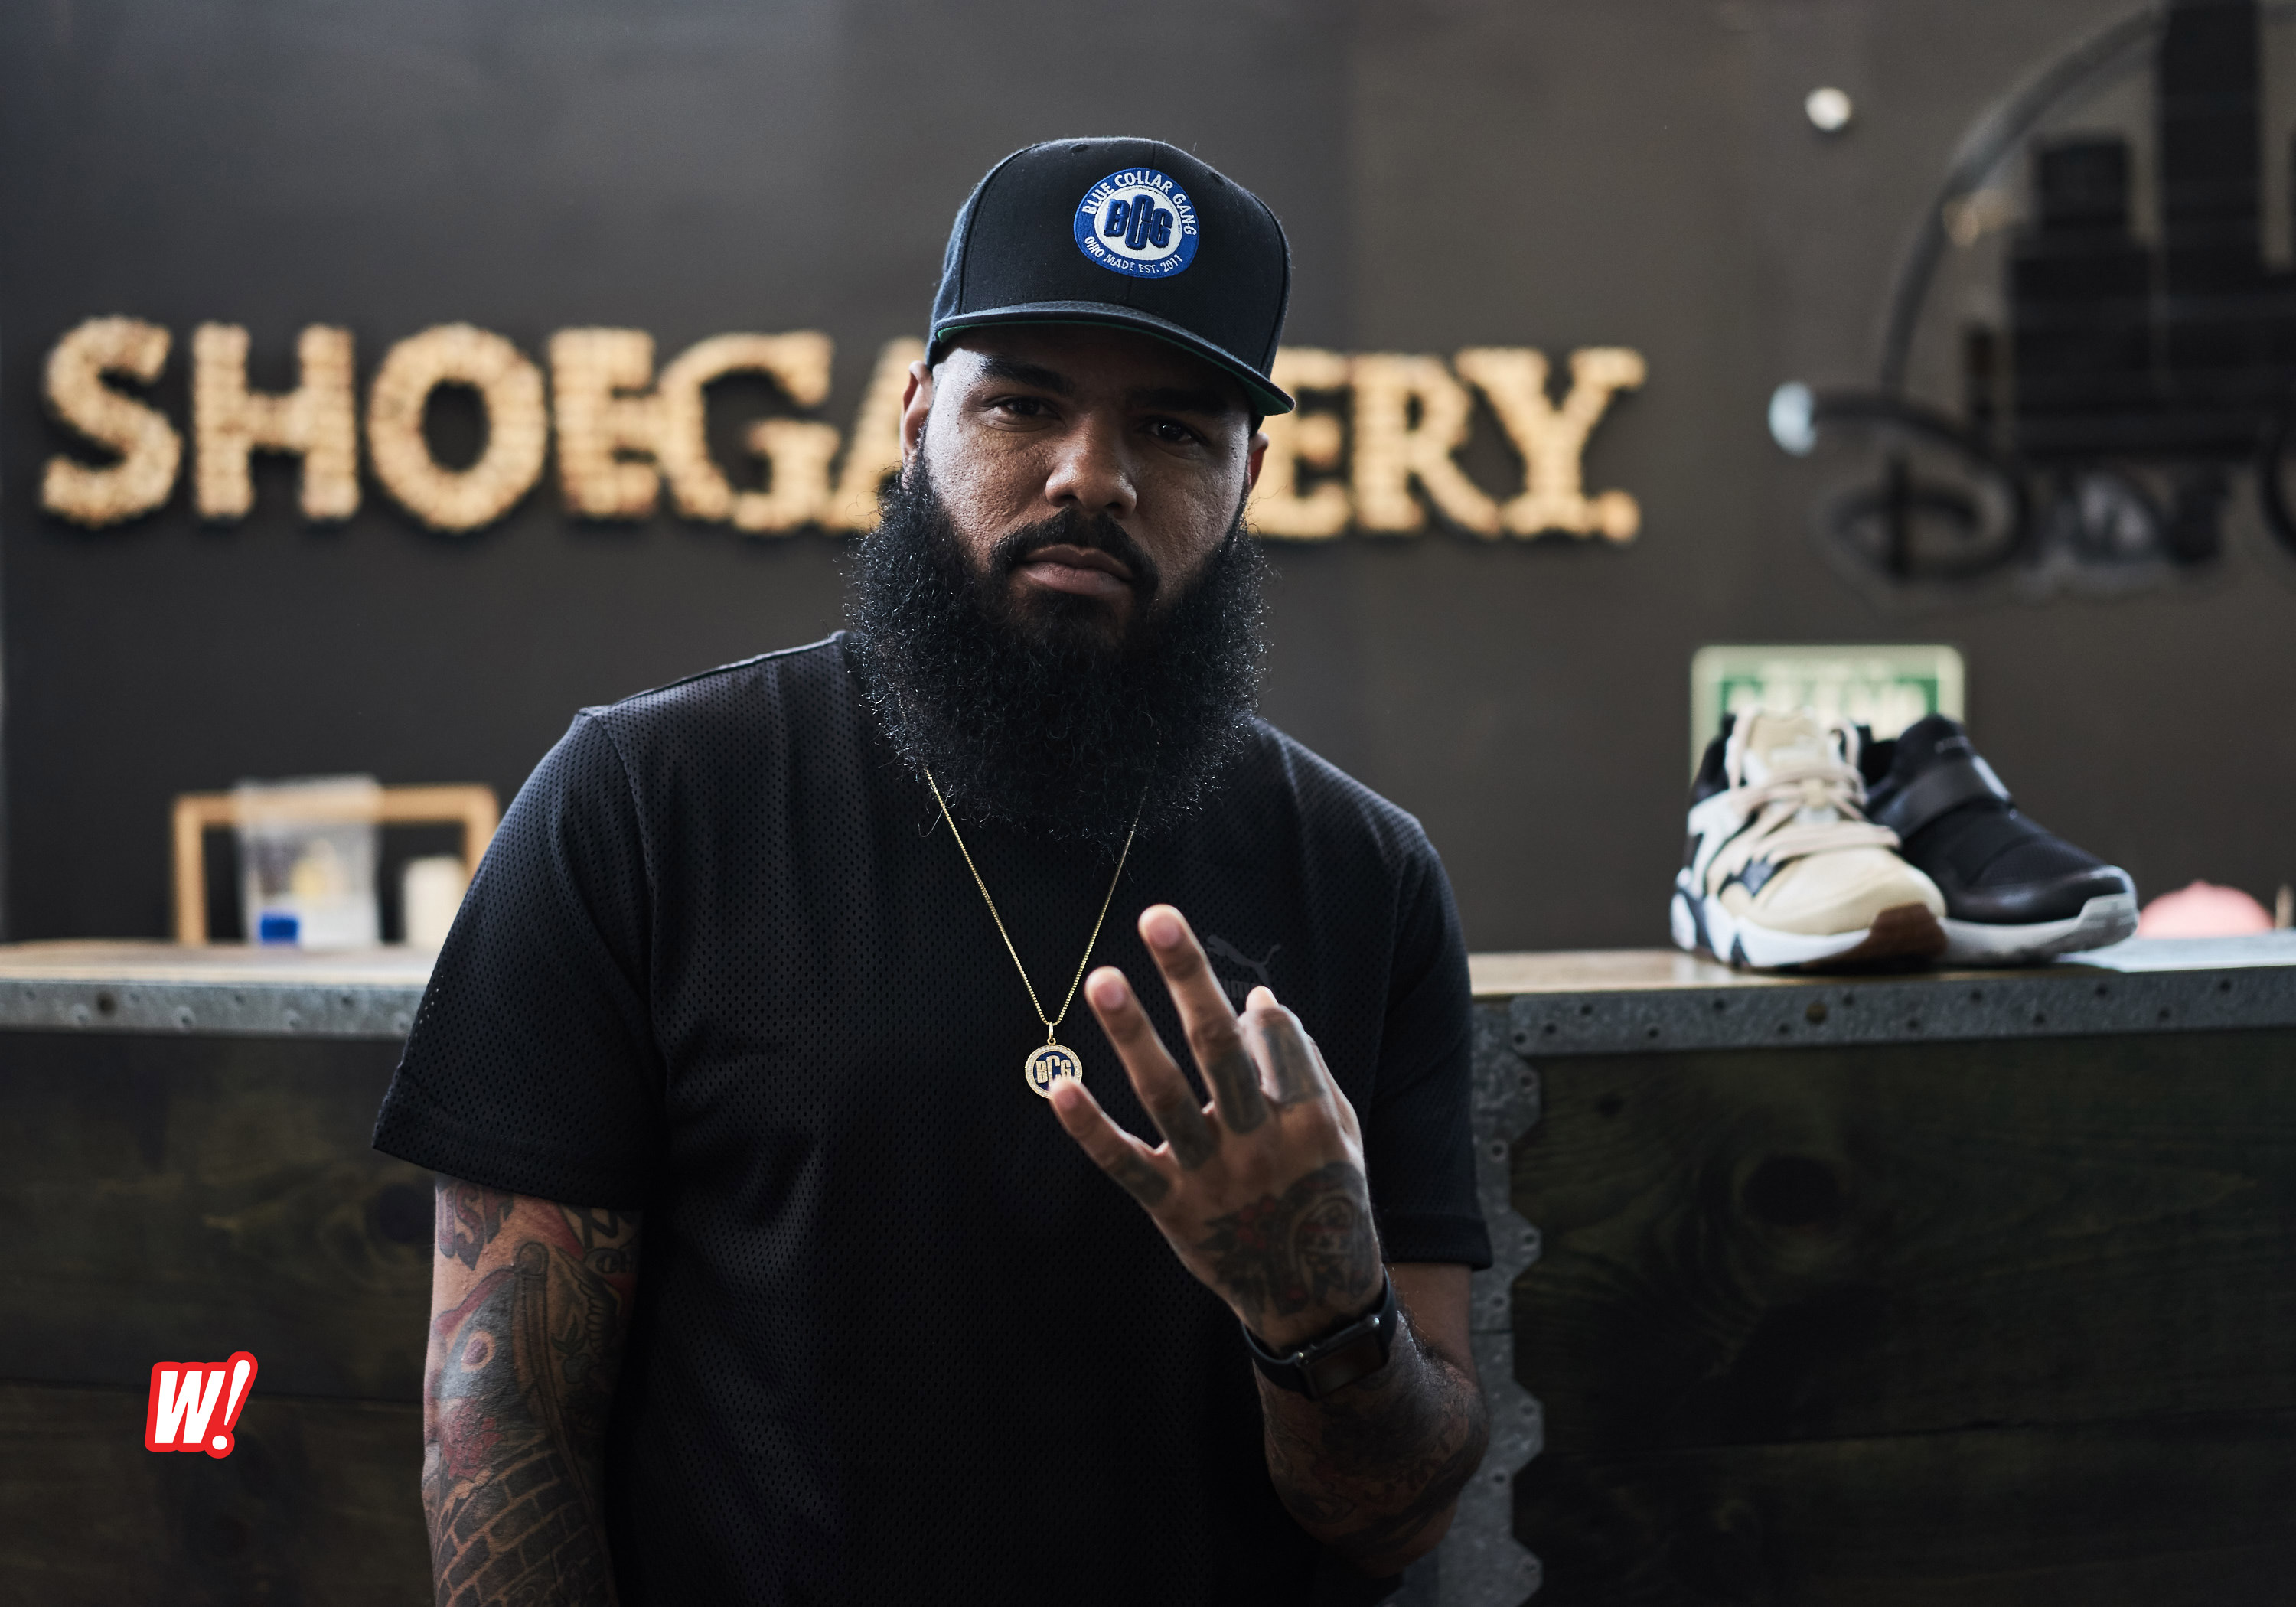 Stalley_shoe_gallery_Miami_Jayromero_Photography_wordintown_